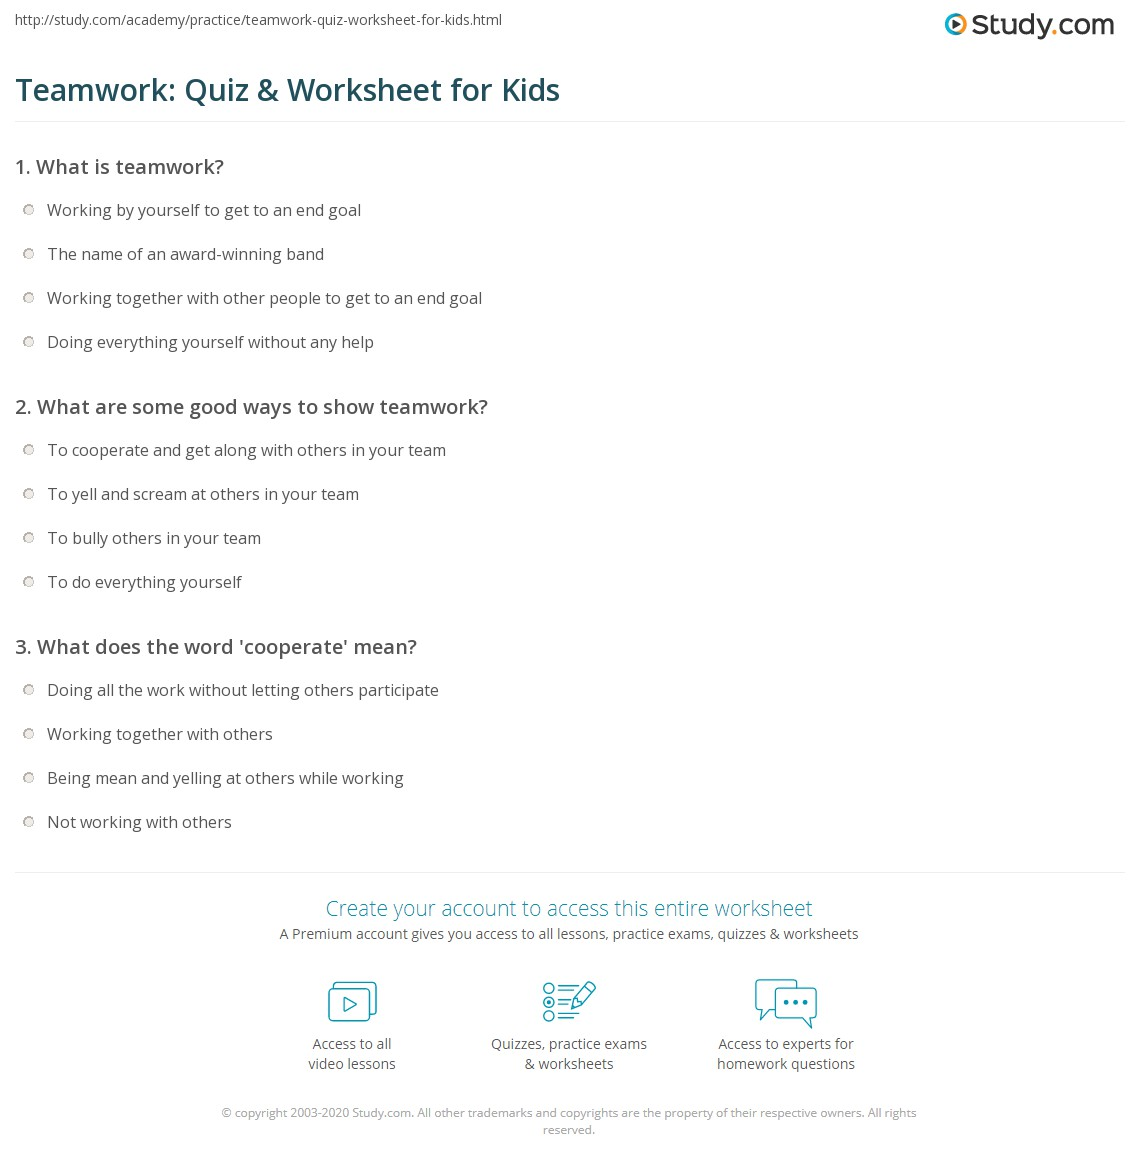 Teamwork: Quiz & Worksheet for Kids | Study.com